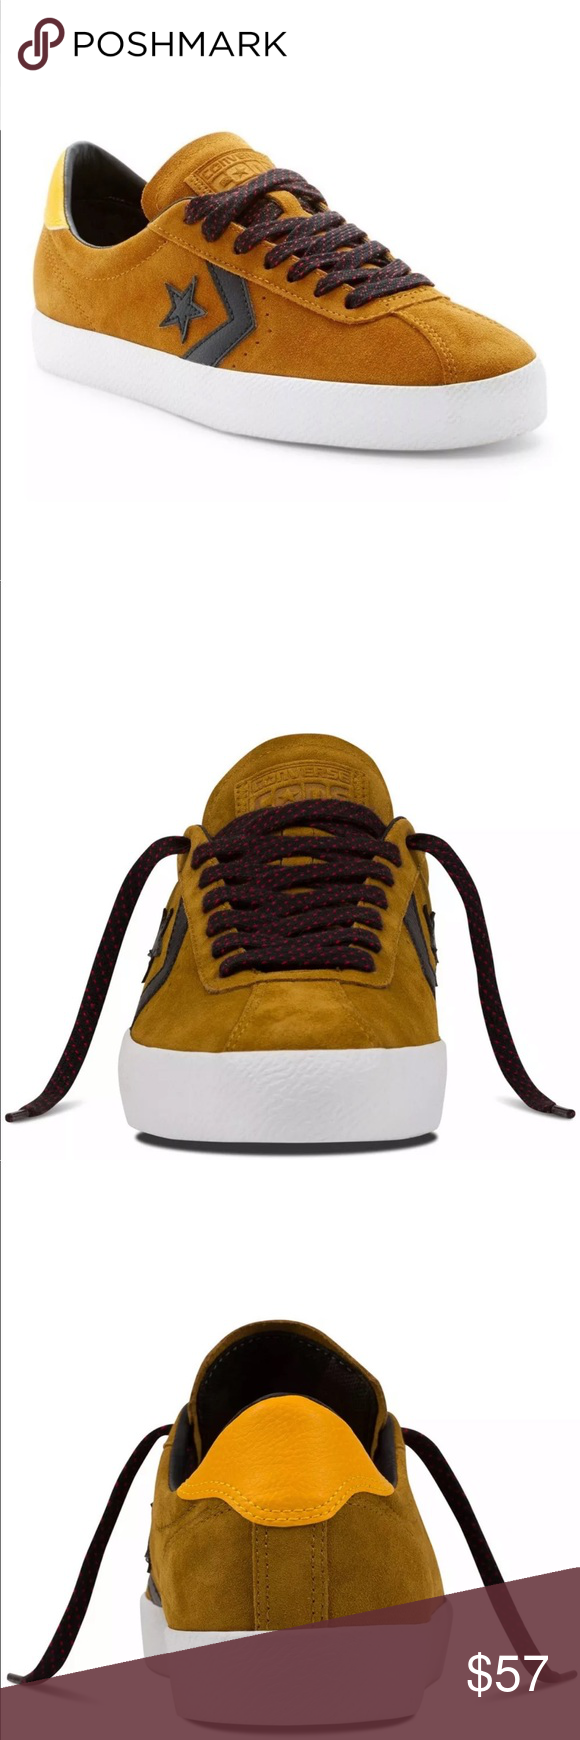 1064a9d56963 Men s Converse Cons Break Point Suede Skate Shoes NEW IN OPEN TOP ...